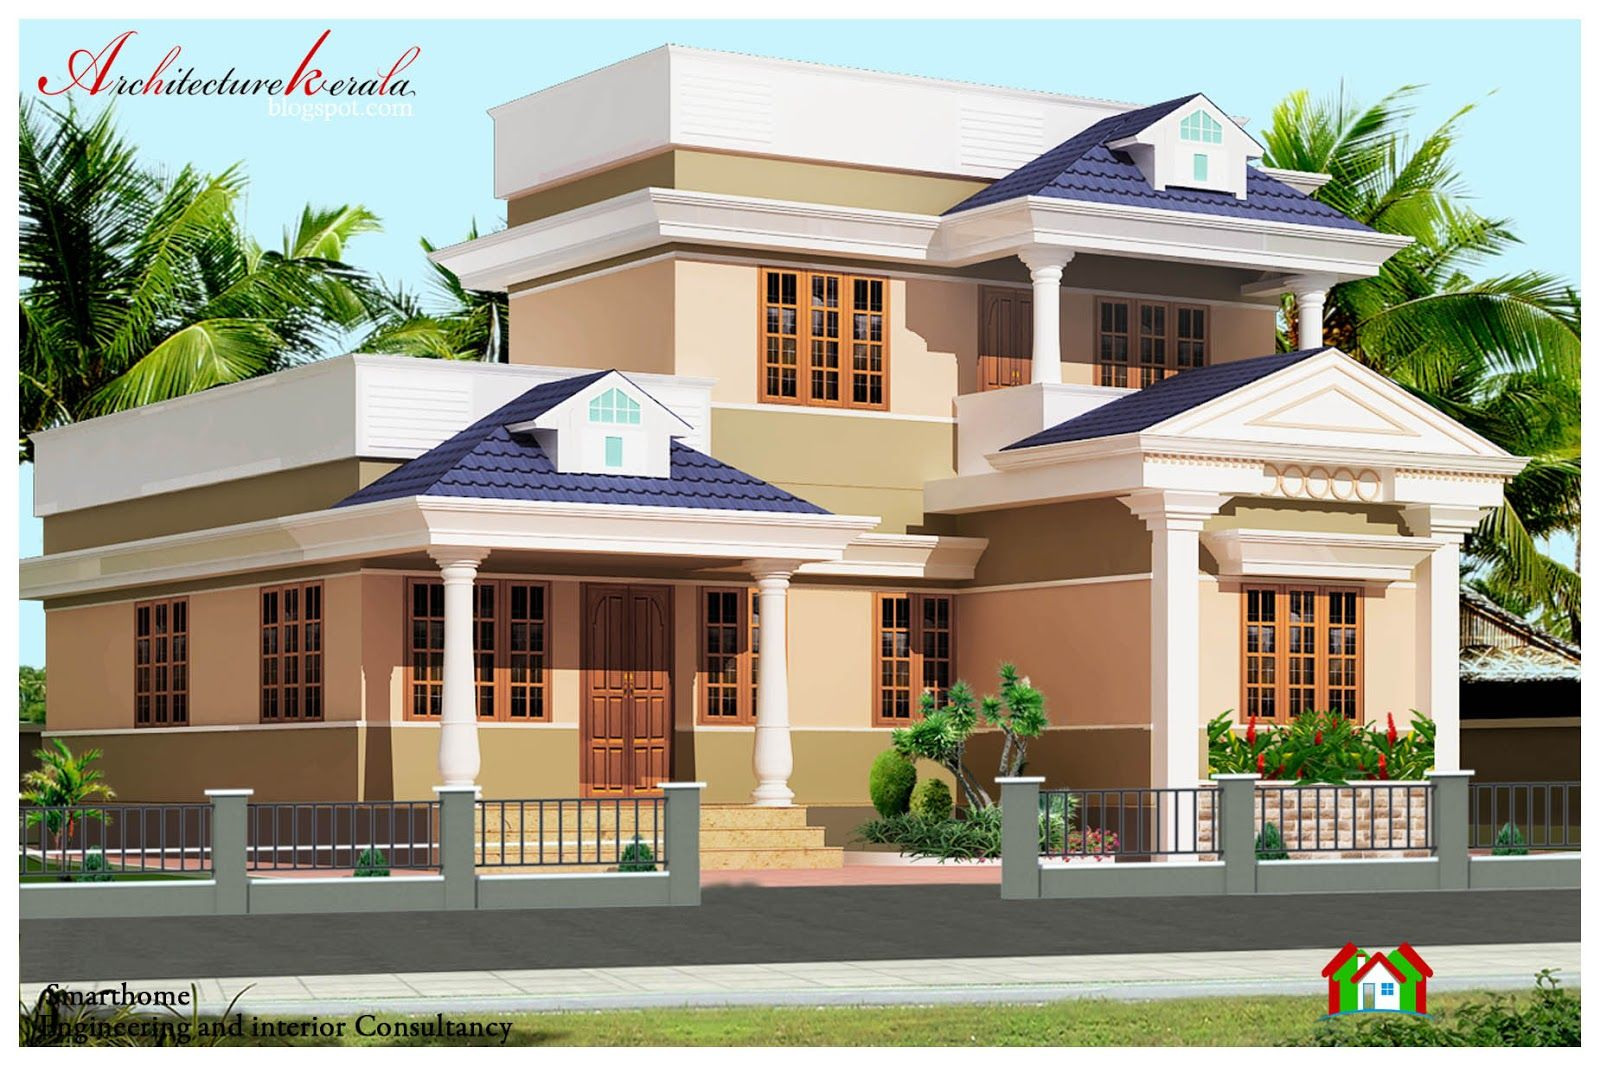 Architecture Design Kerala Model architectural house plans kerala model design new